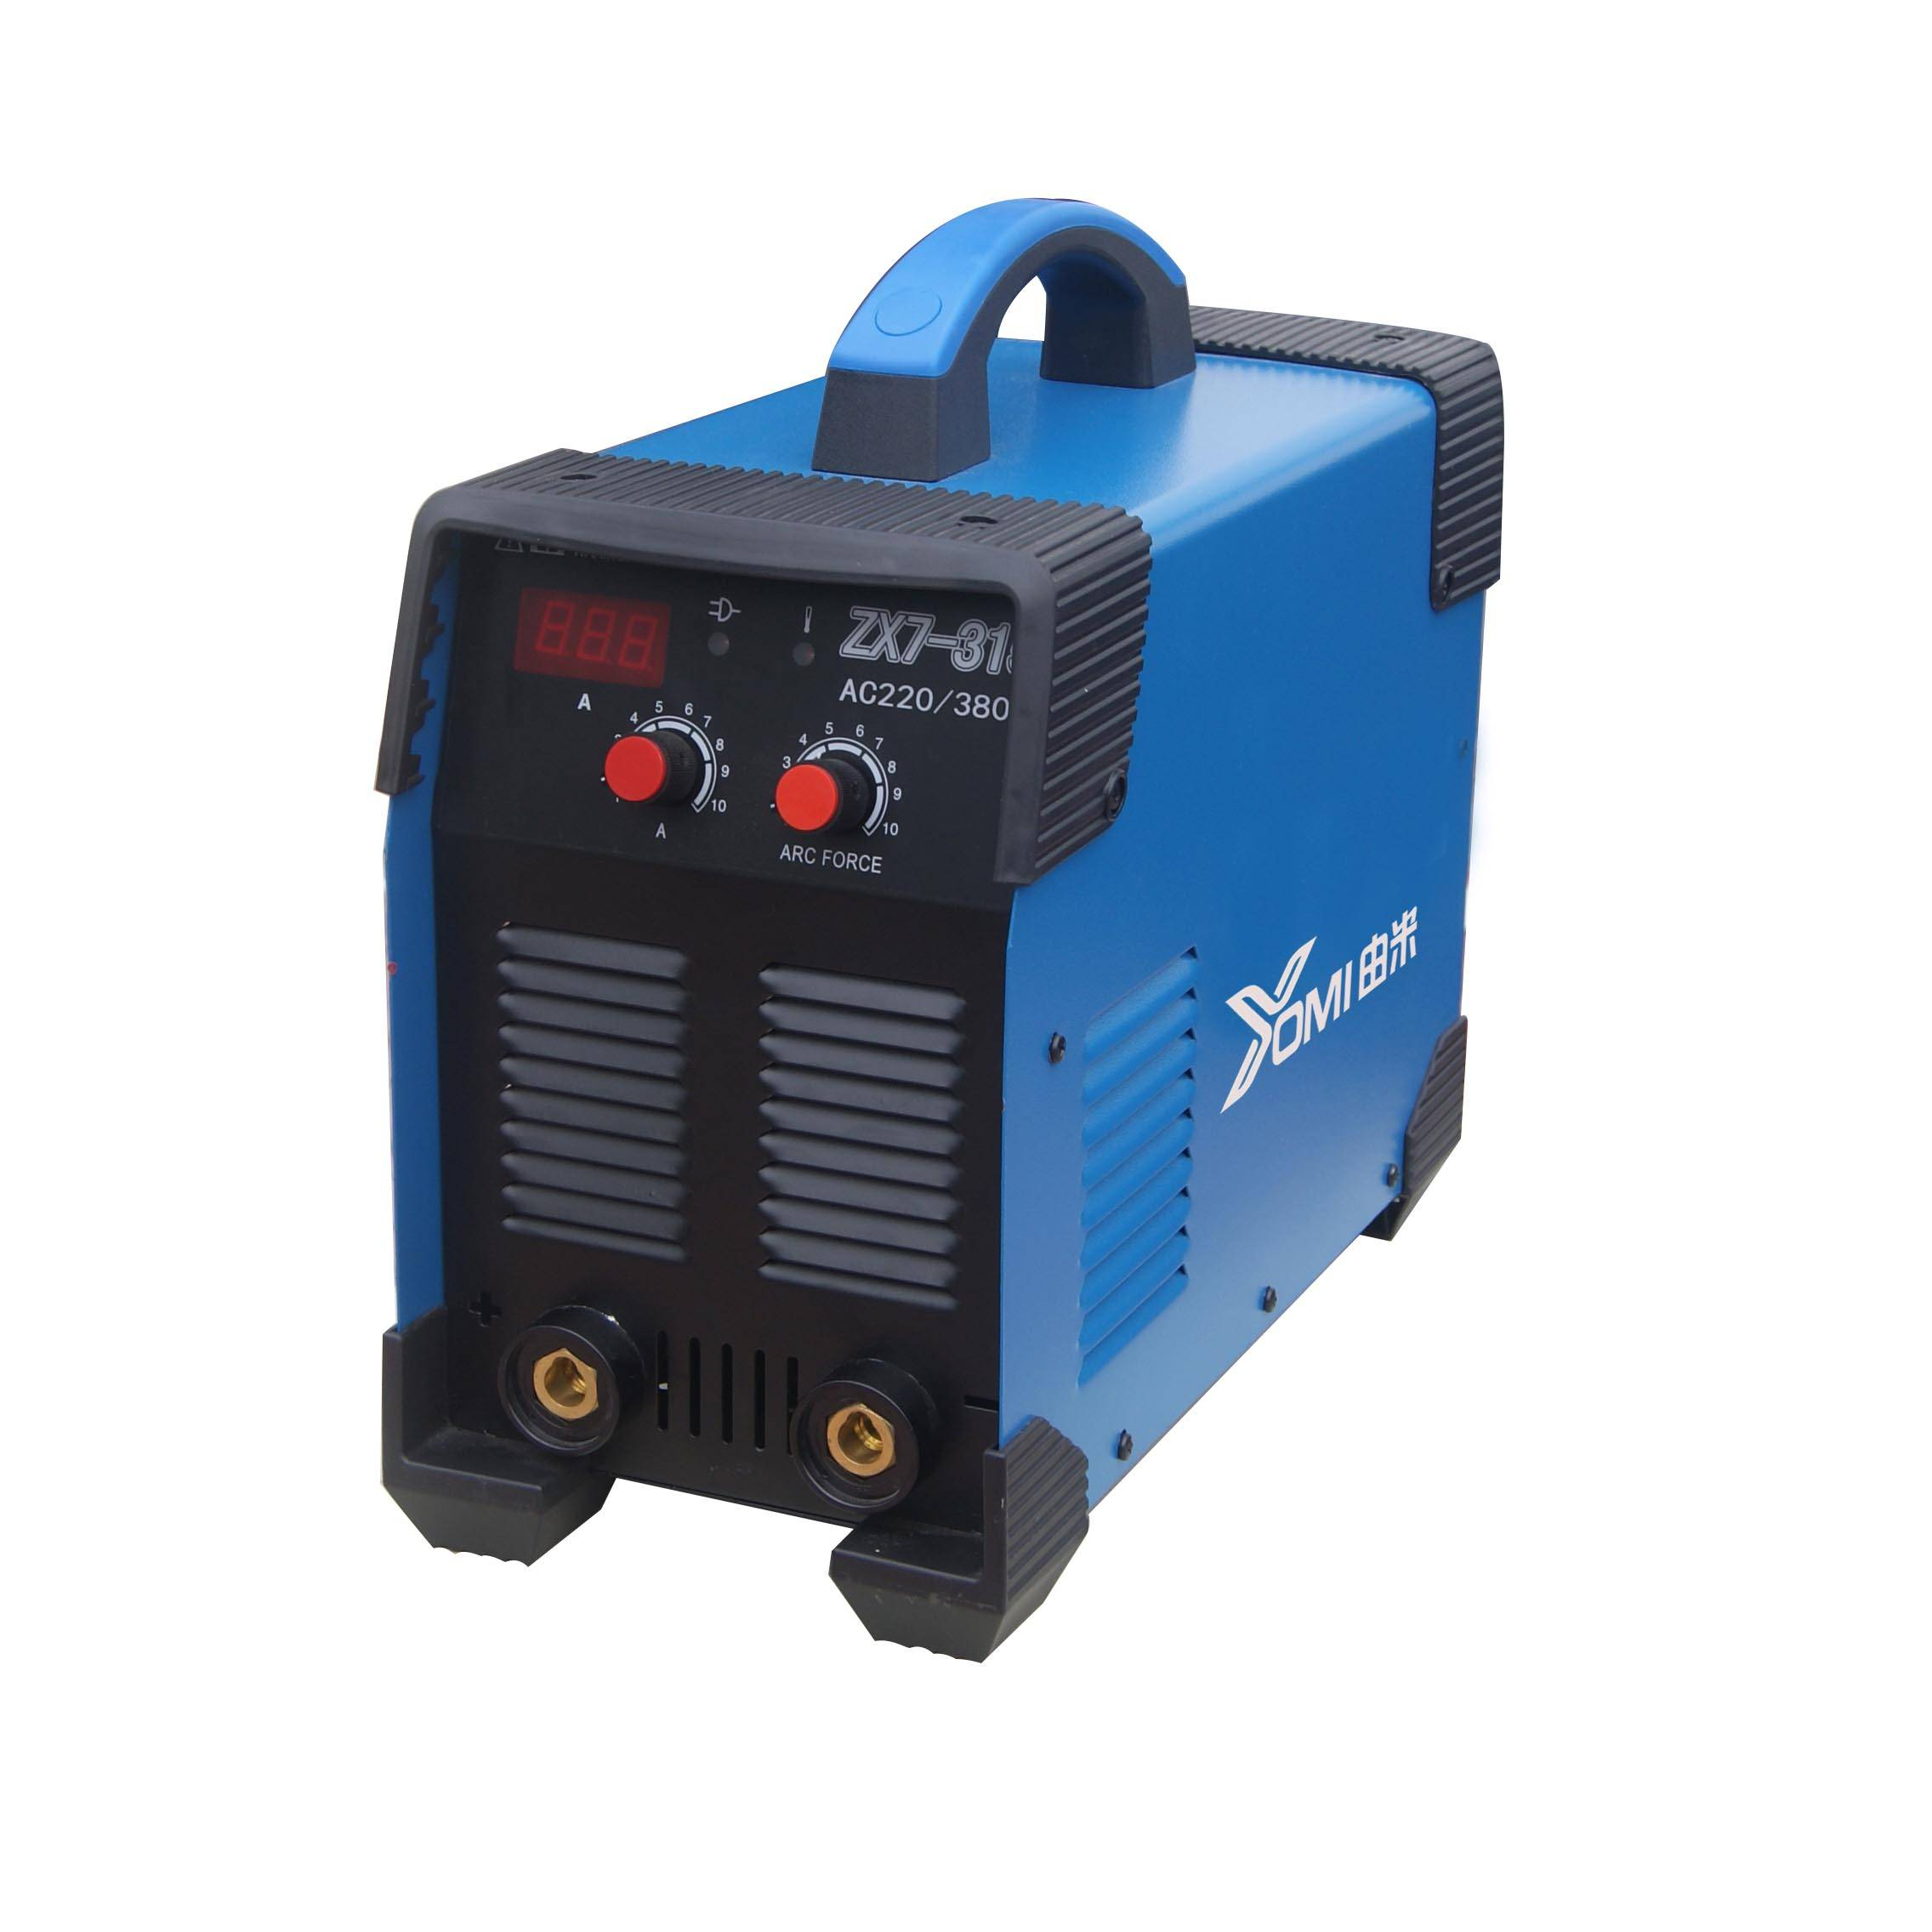 OEM/ODM Factory Cnc Plasma Cutting Machine Metal -